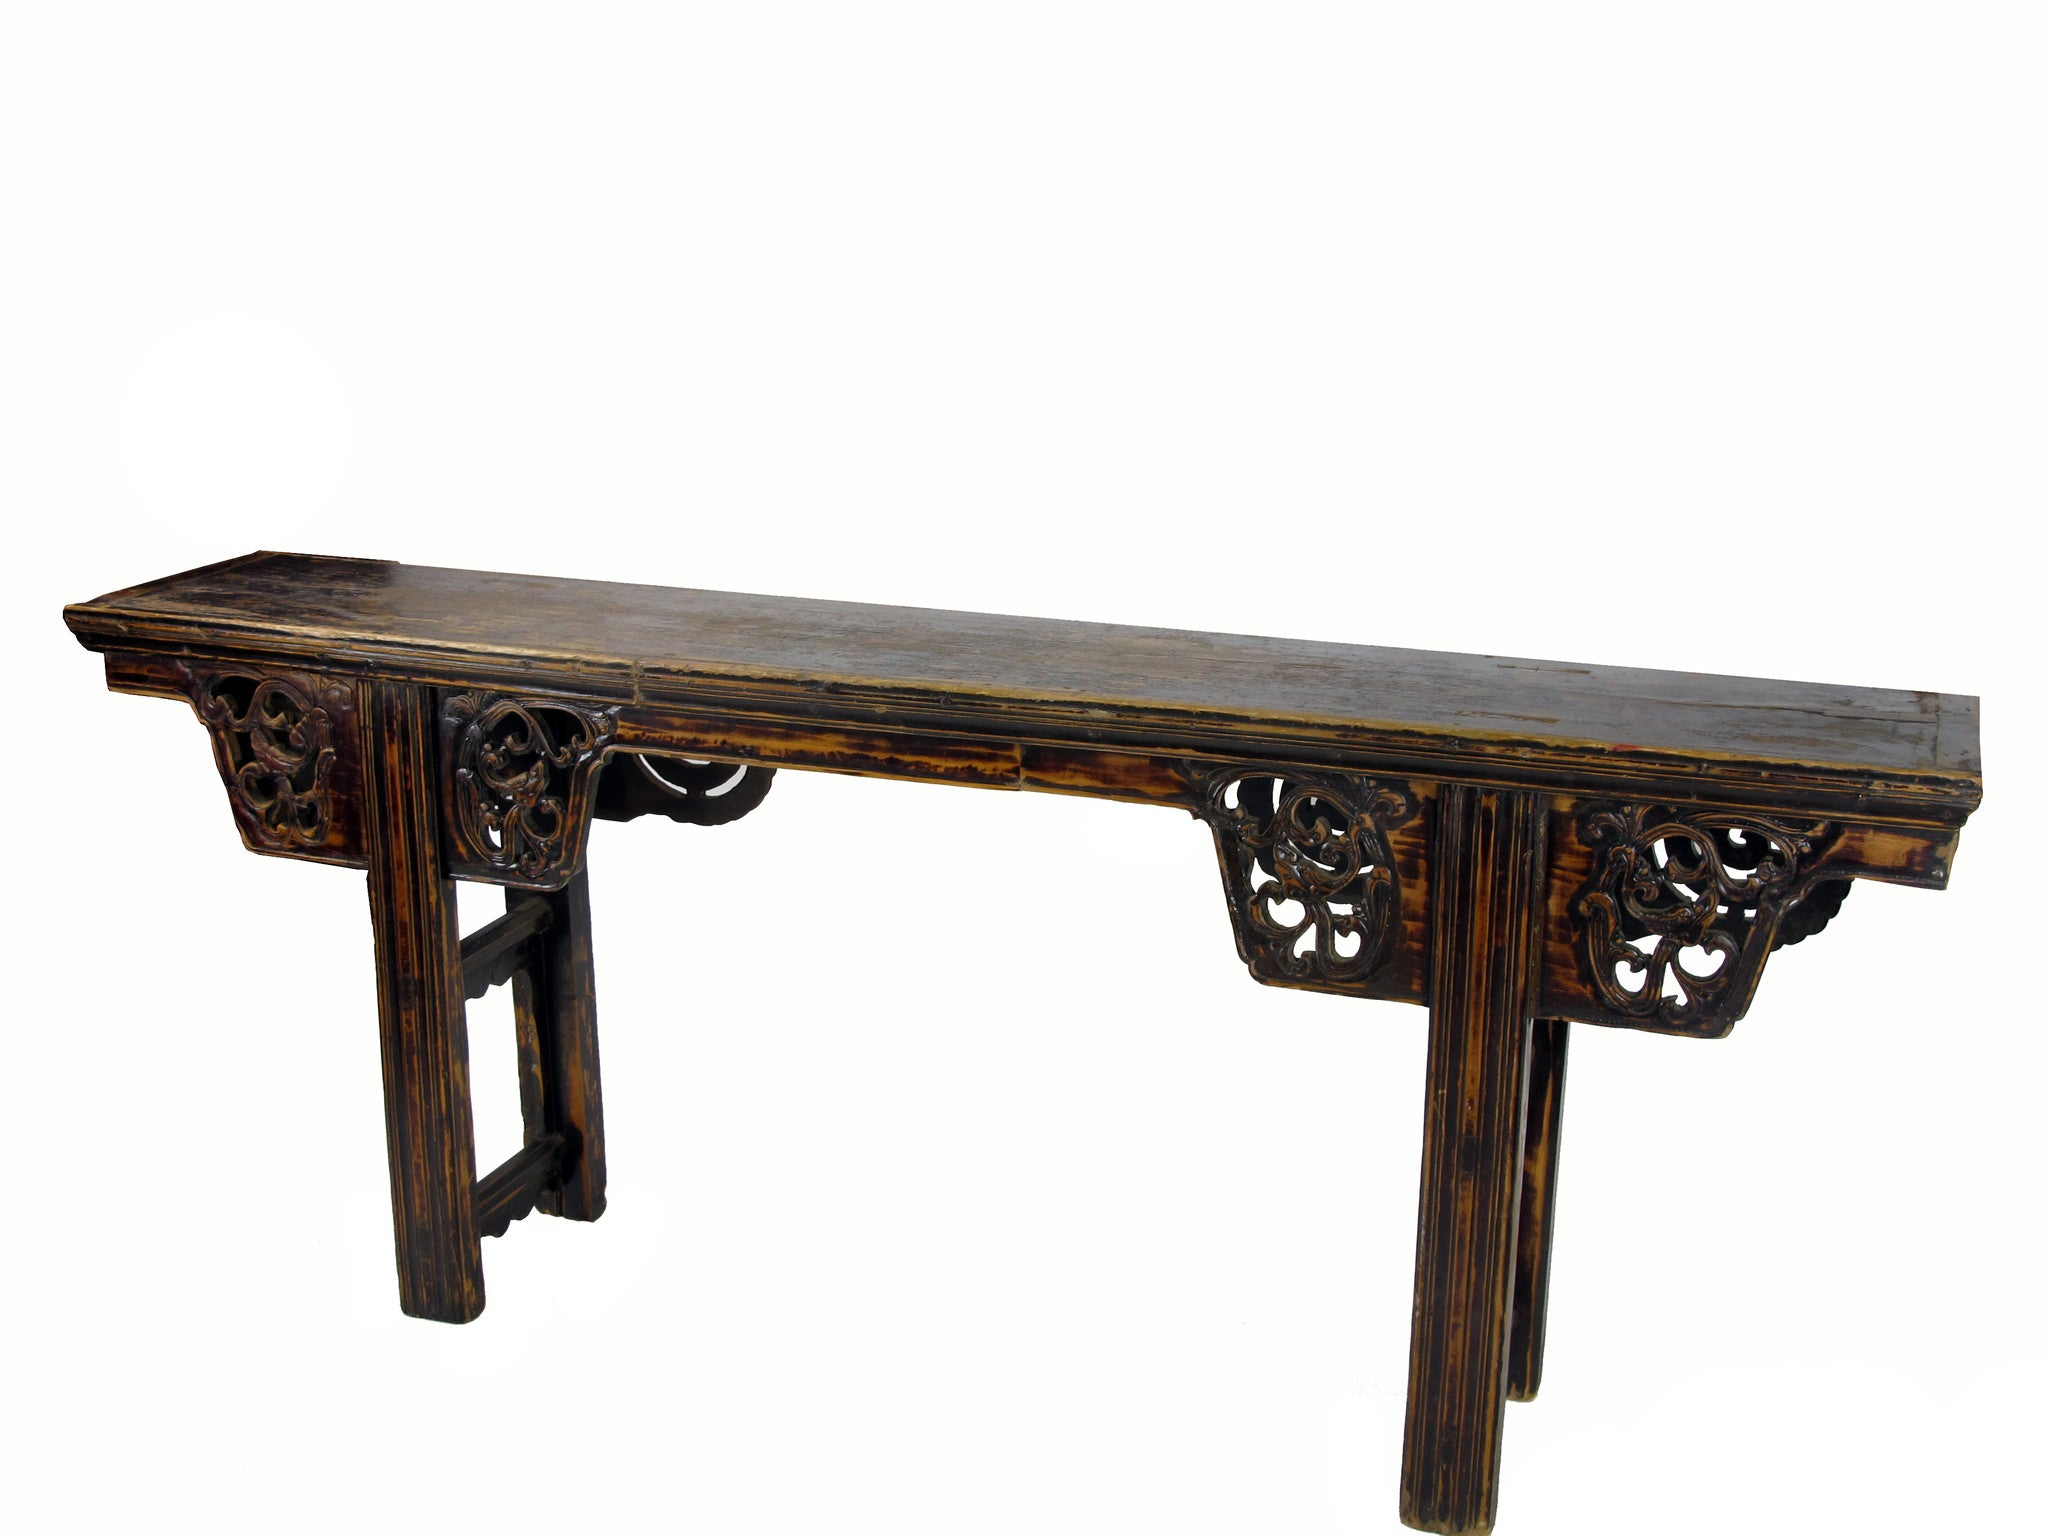 Antique chinese console table dyag east antique chinese console table antique chinese console table dyag east geotapseo Gallery